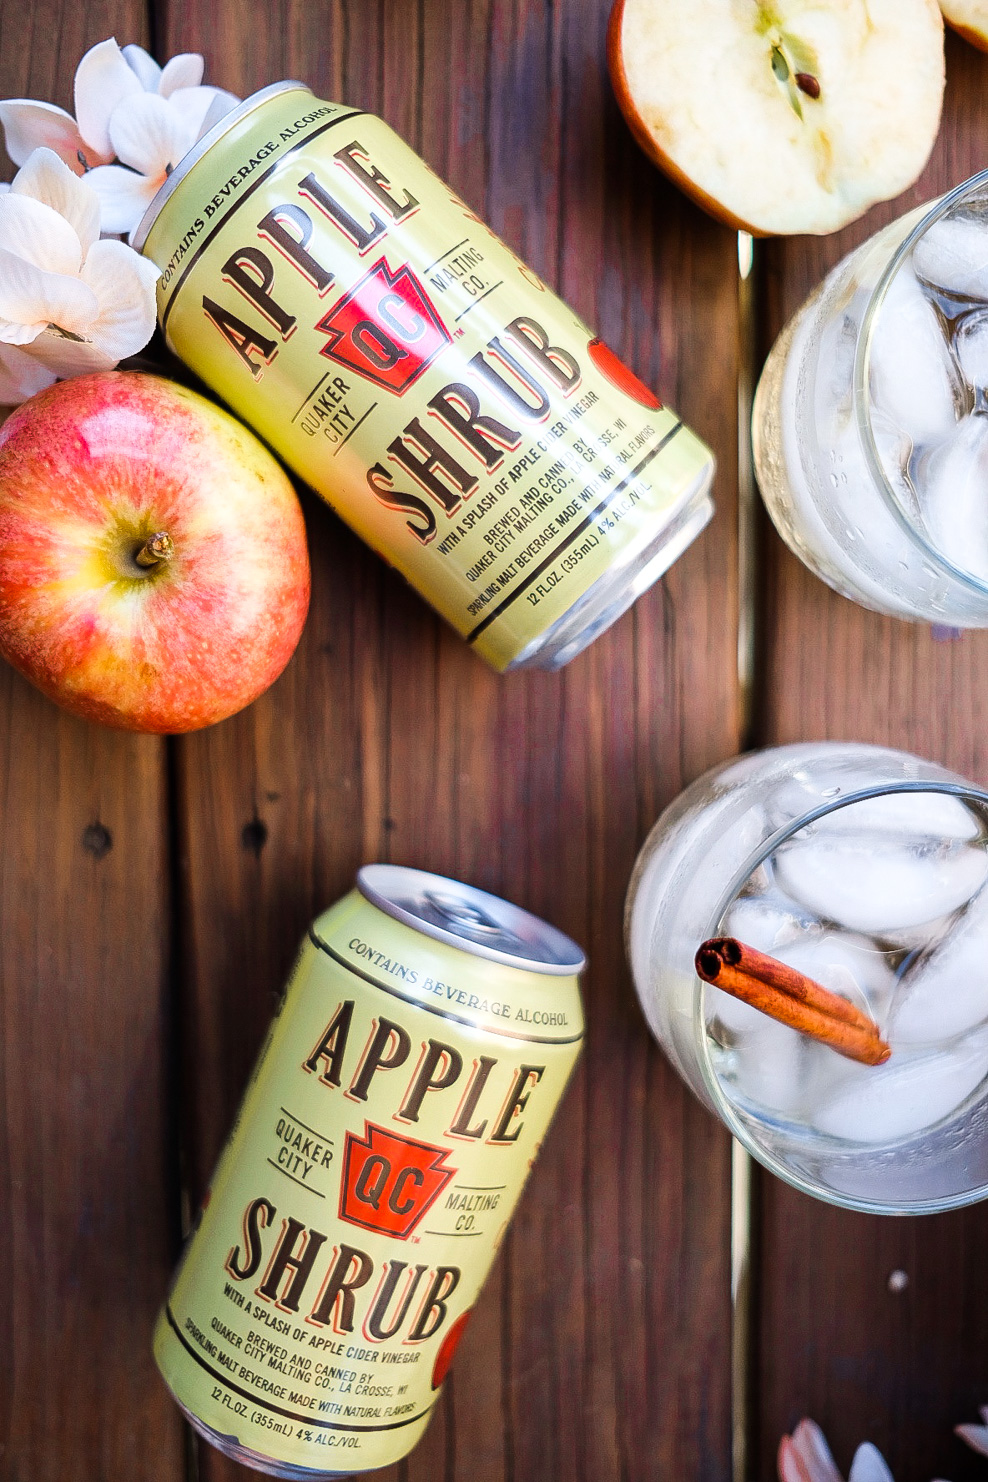 Lifestyle Blogger shares a fall Apple Cocktail from Quaker City Shrub.